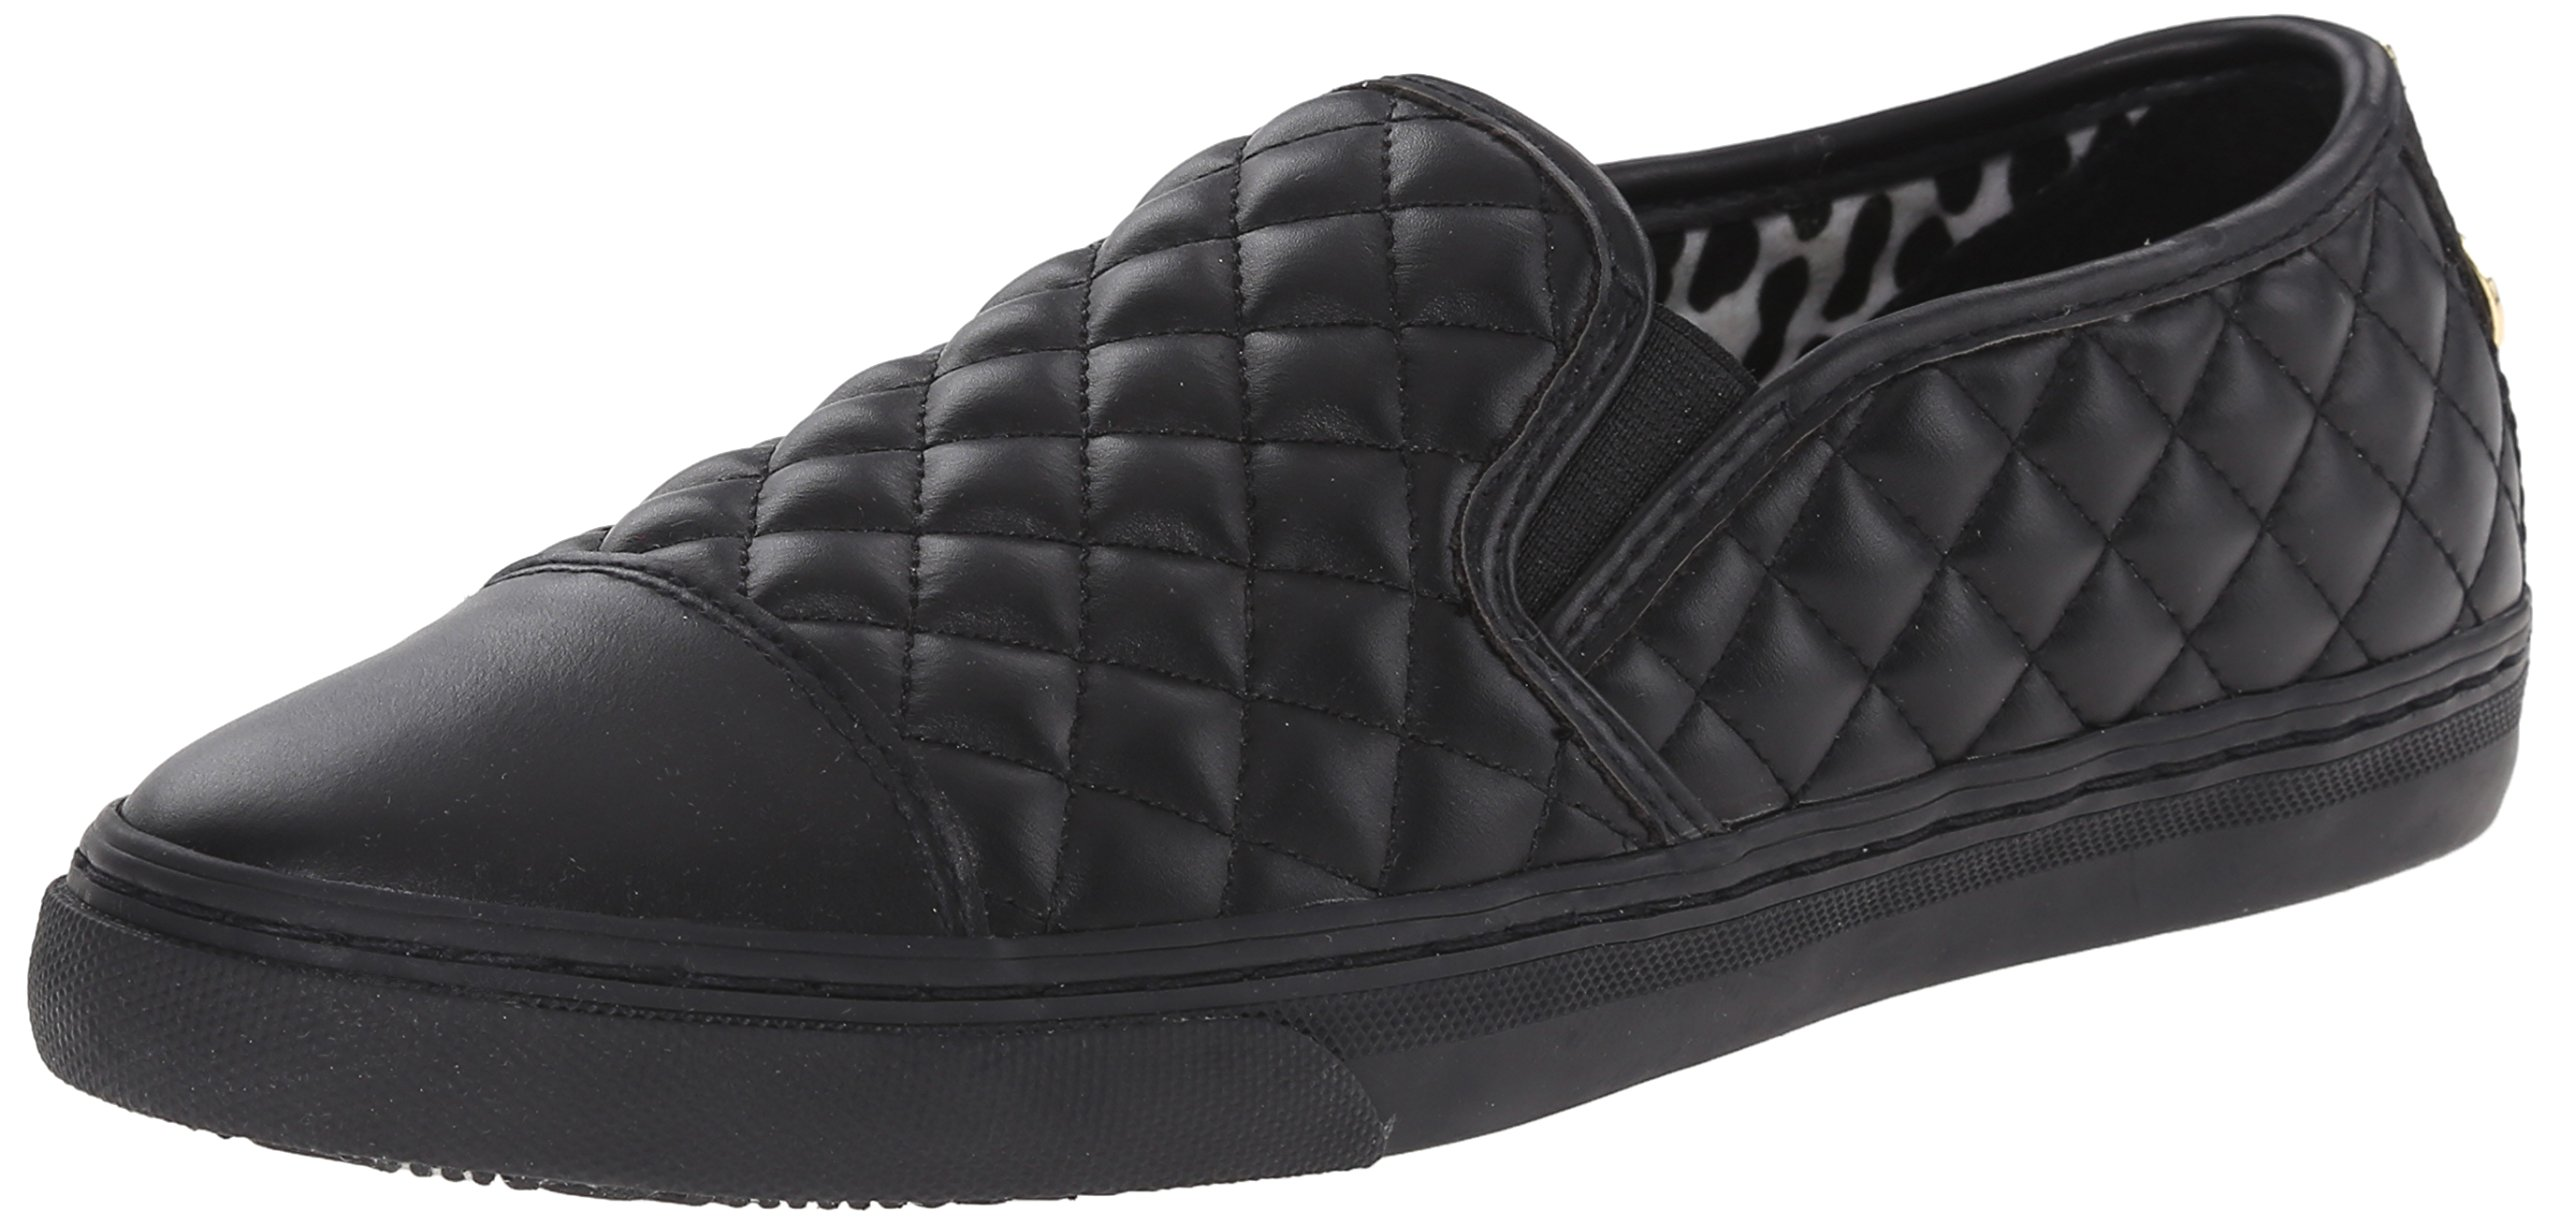 Geox Women's New Club Low Top Fashion Sneaker, Black, 38 BR/8 M US